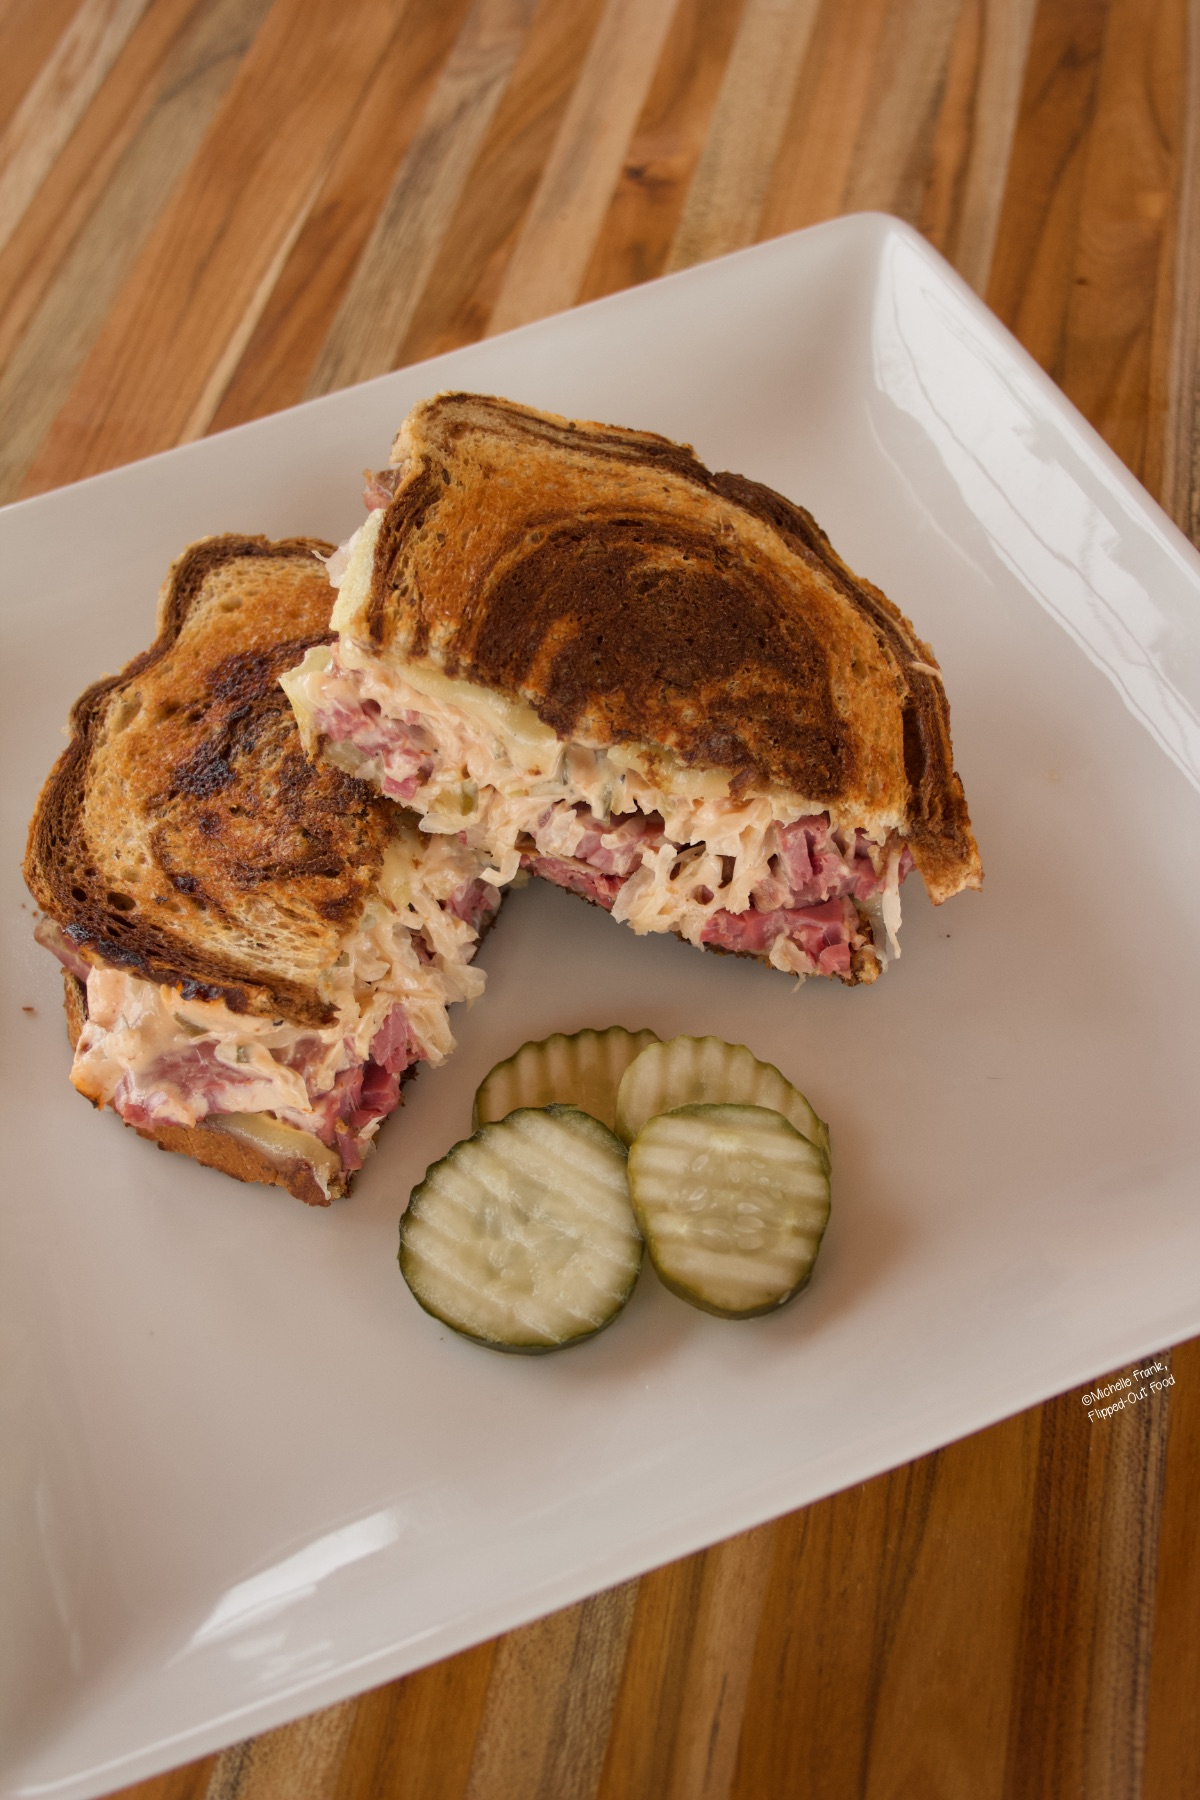 A Reuben sandwich, sliced in half, on a white plate garnished with pickle slices.